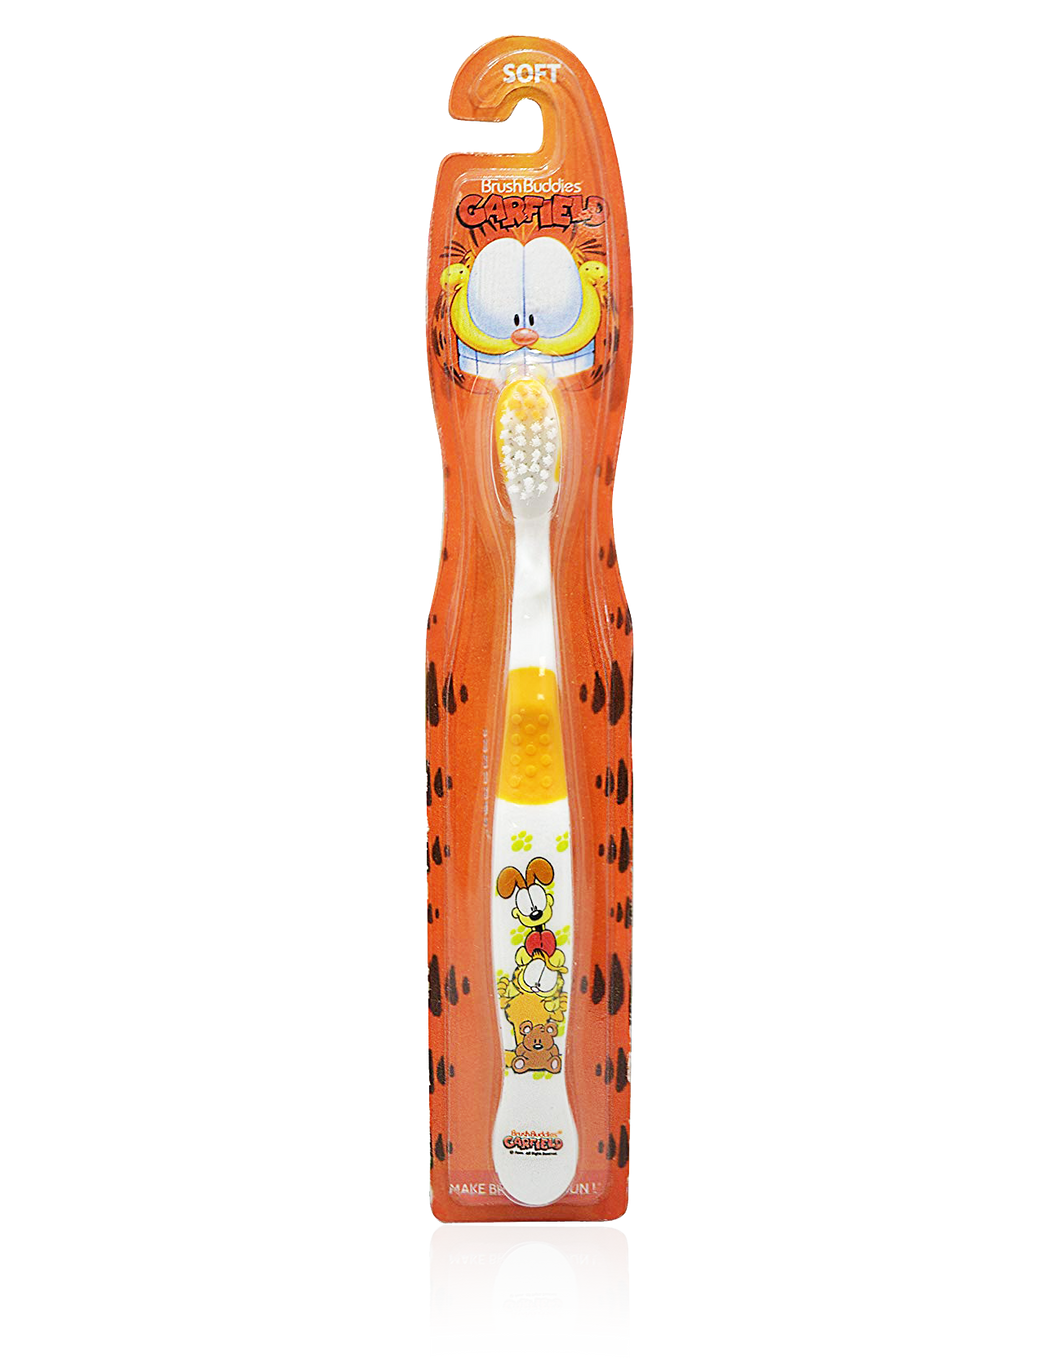 Garfield 1 Pack Toothbrush